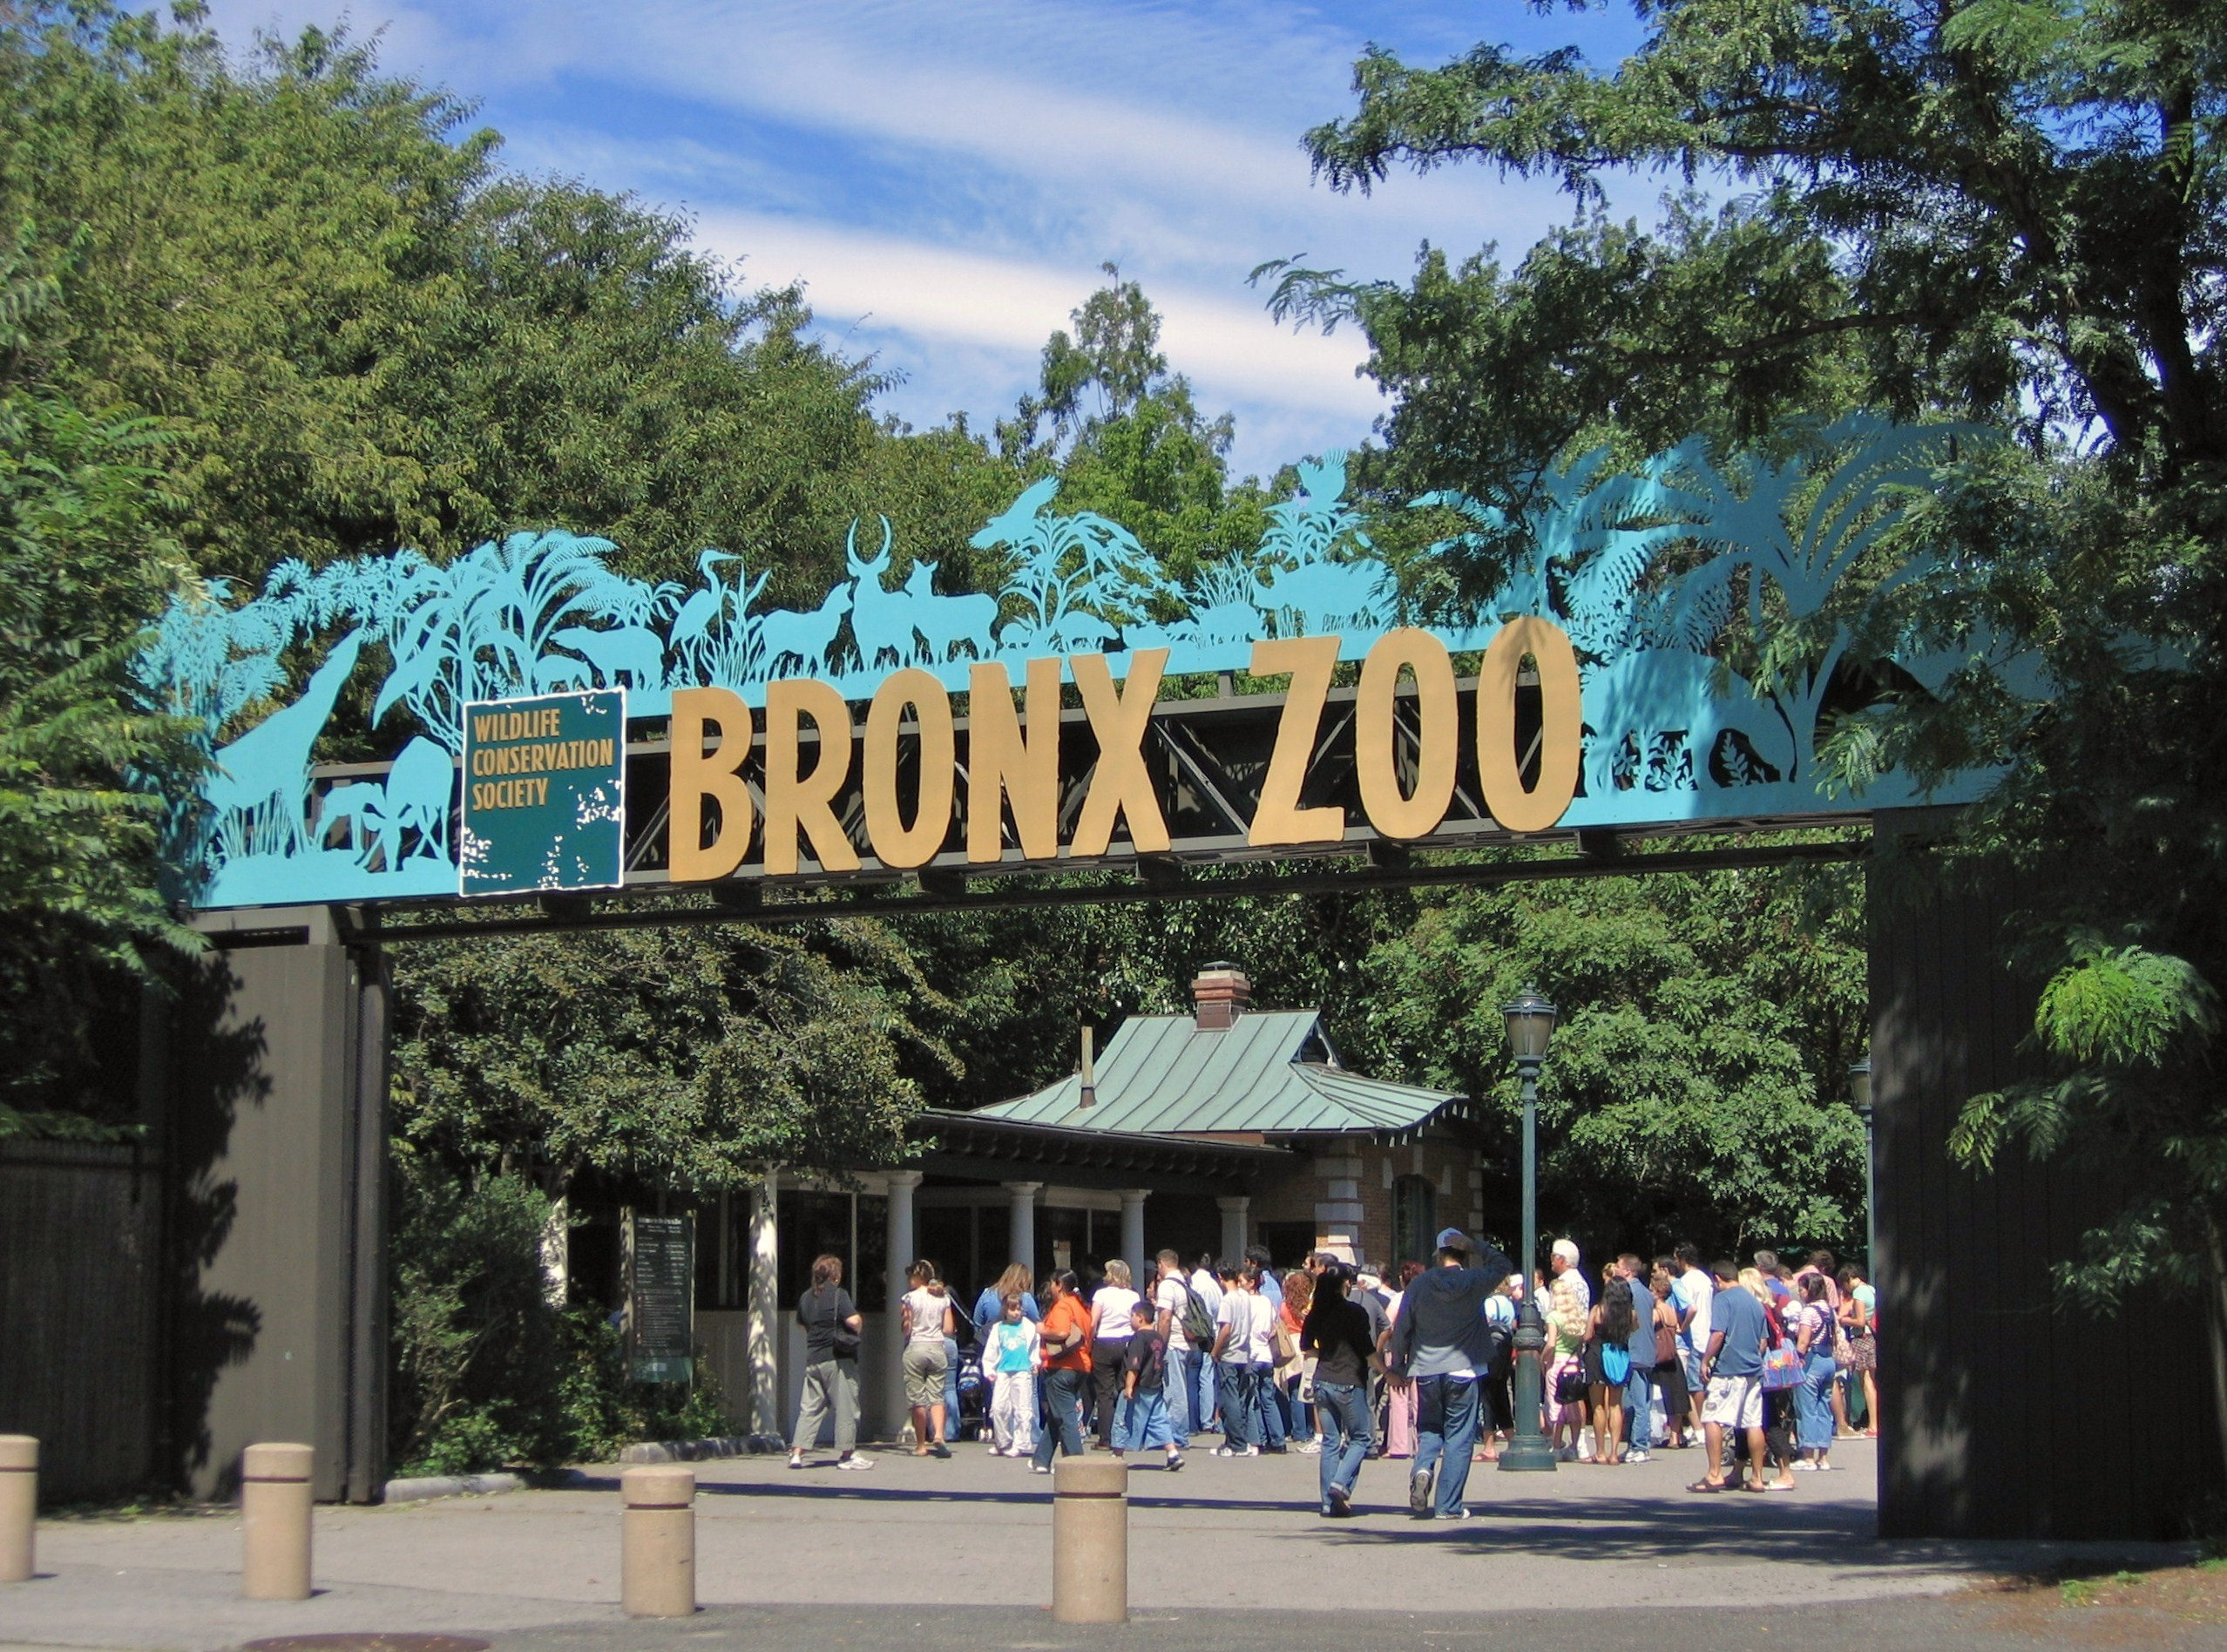 Bronx Zoo - Wikipedia